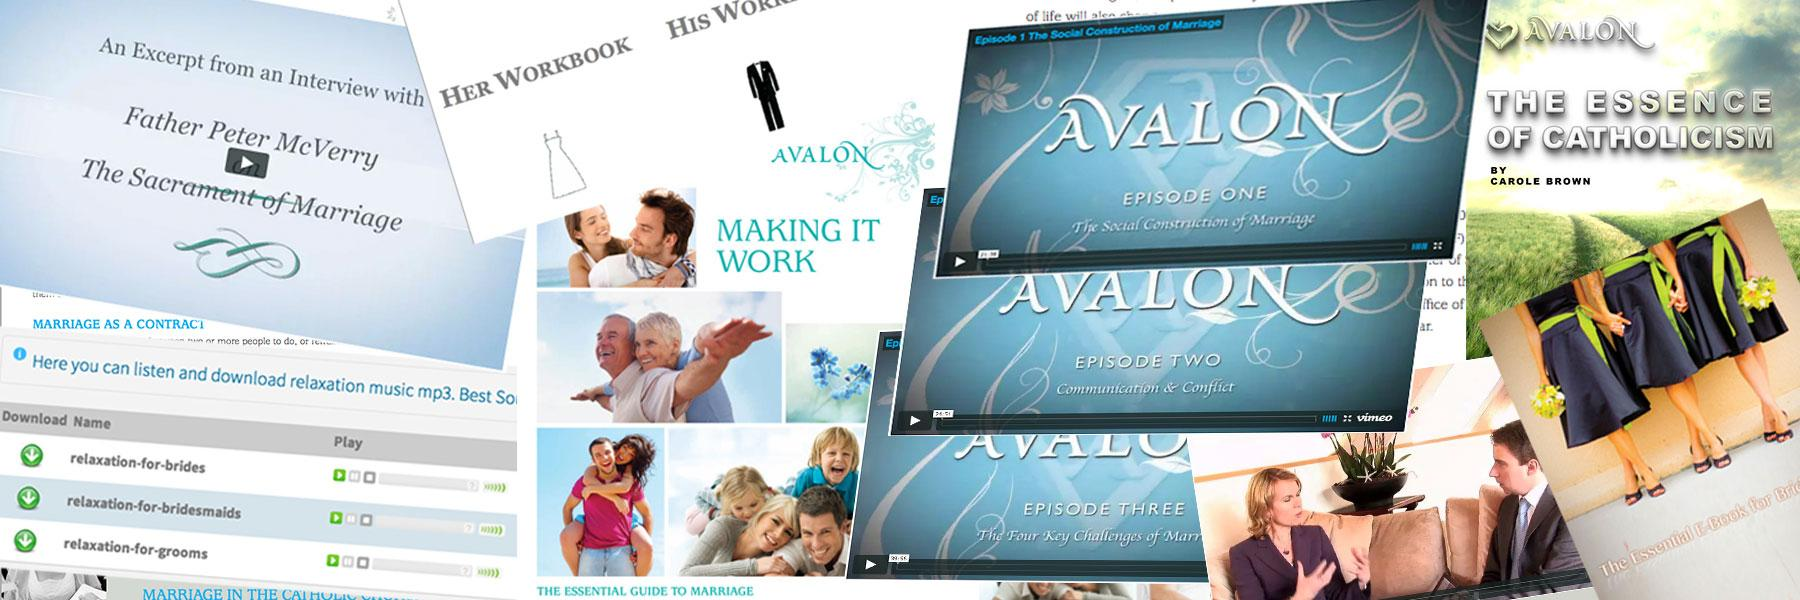 Review and Analysis of Avalon Home Study Course